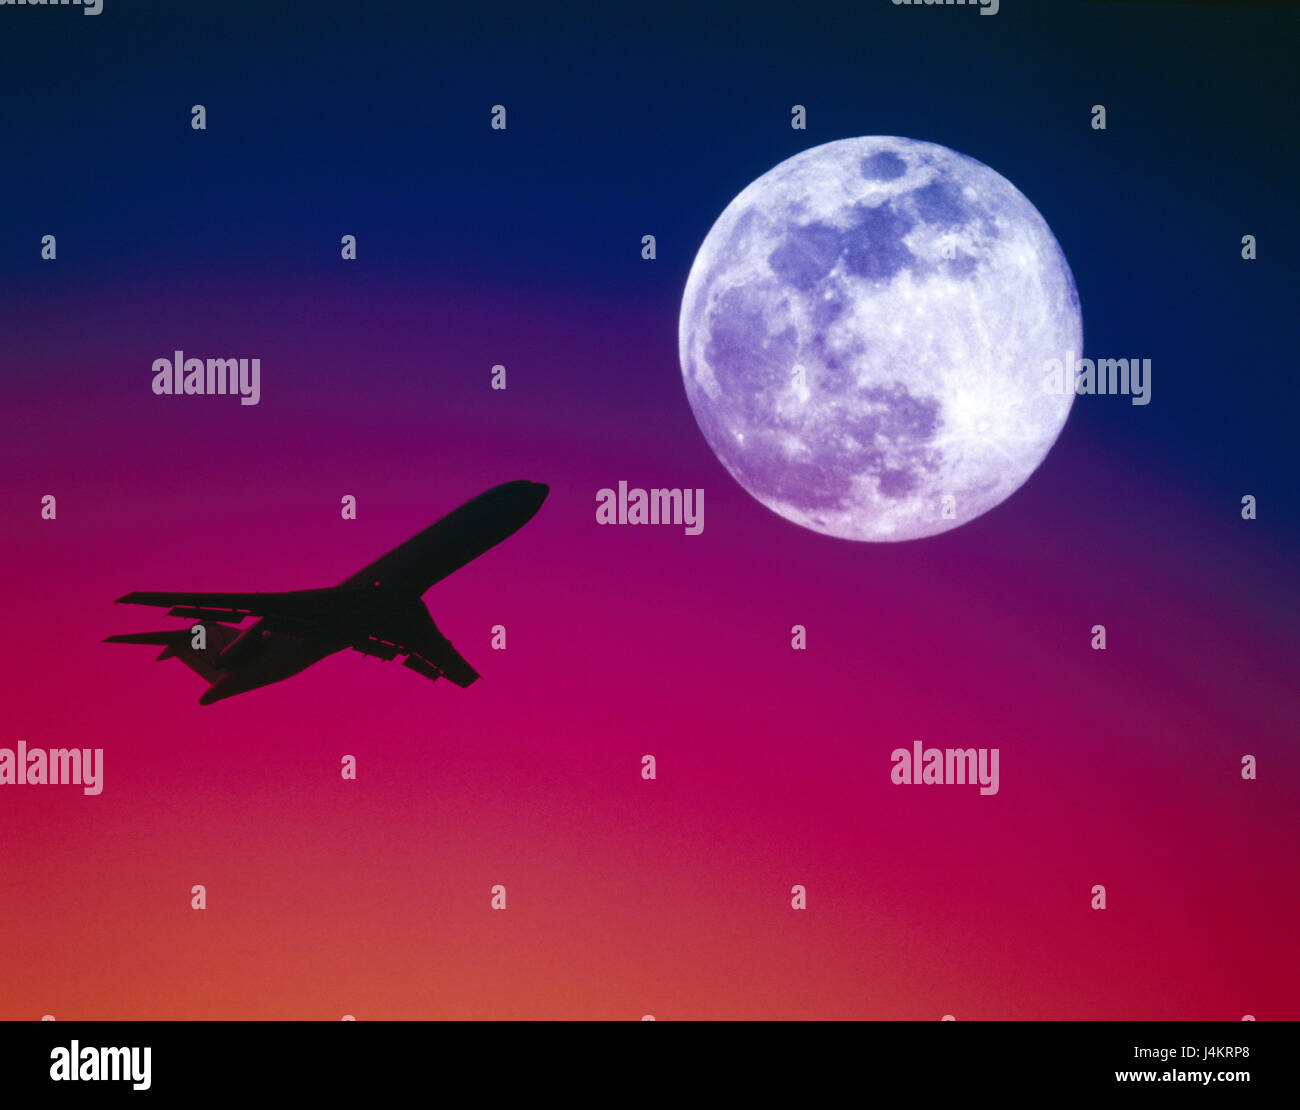 heavens evening tuning airplane full moon evening sky